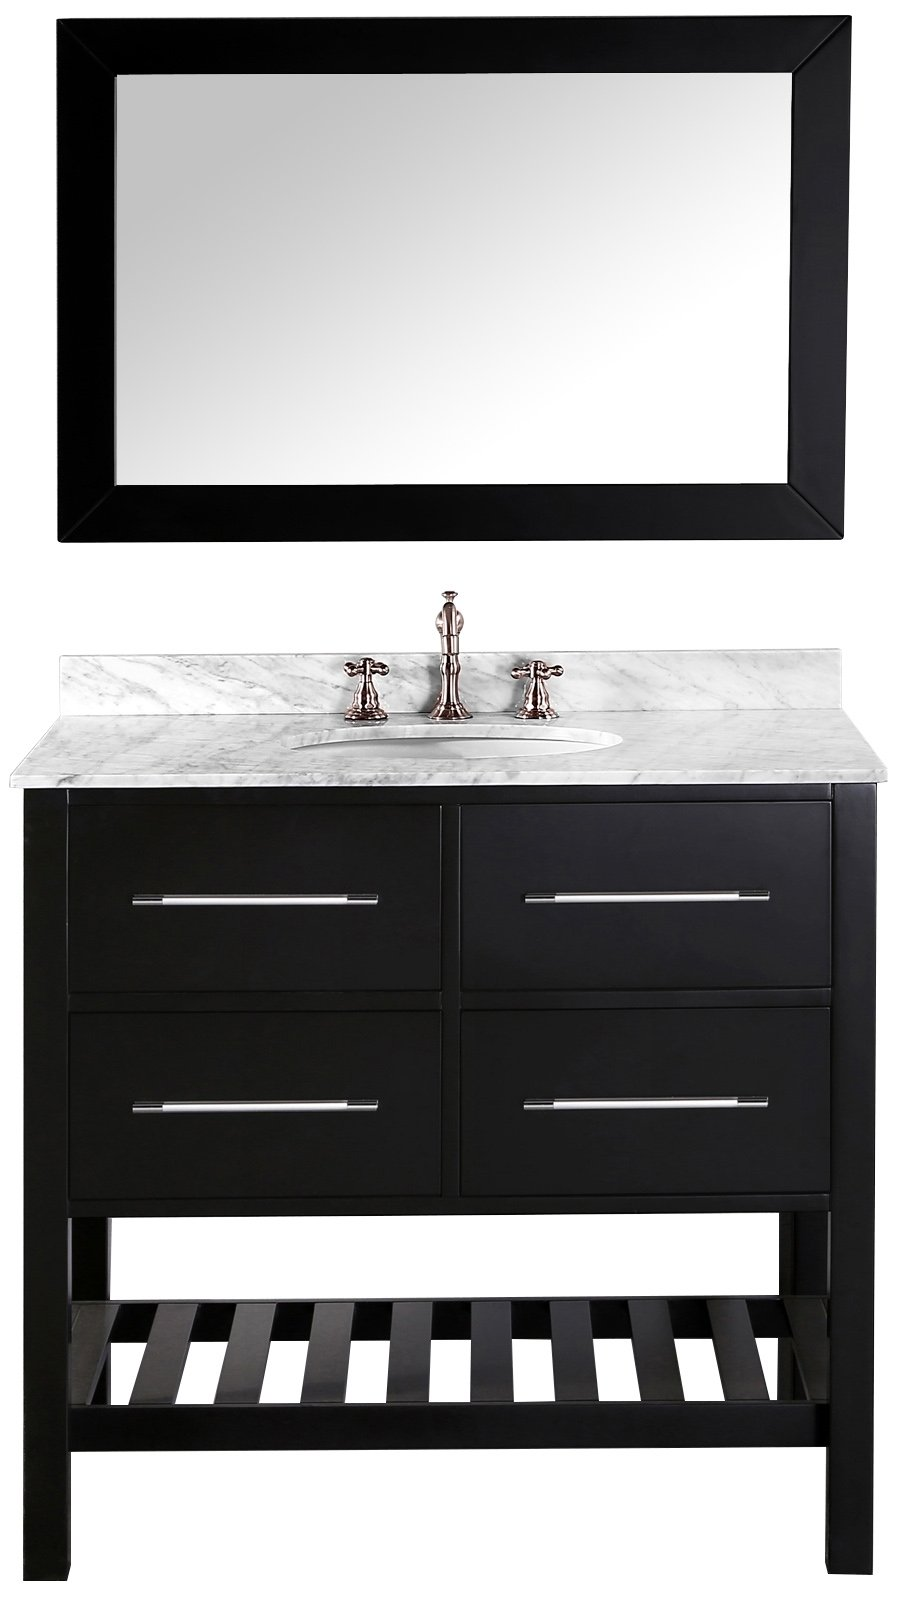 Bosconi Bathroom Vanities SB-250-3 WH Contemporary Single Vanity with Soft Closing Drawers, Marble Countertop, and Towel Rack, 36'', White